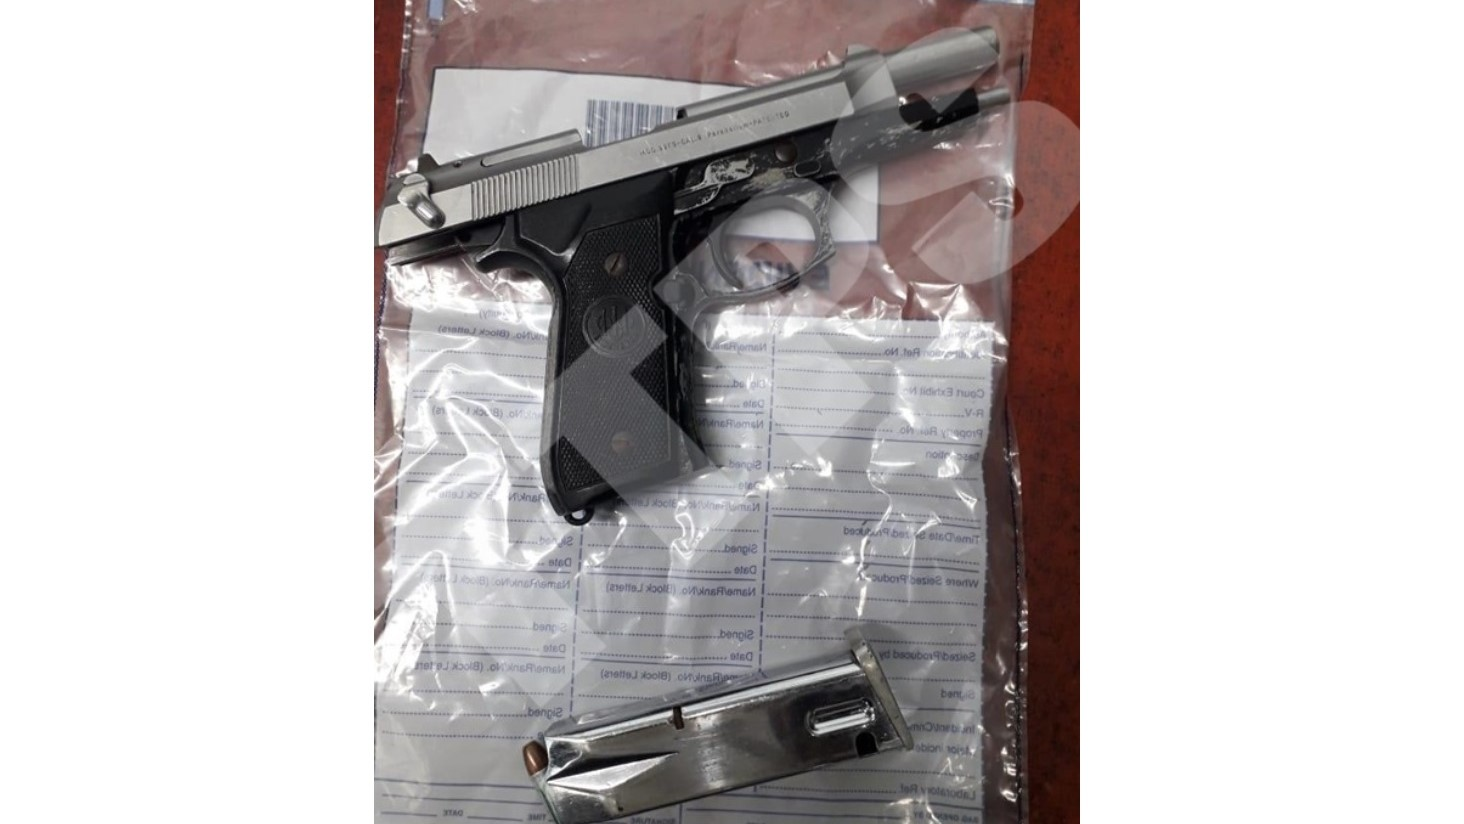 Police seized this 9mm Beretta pistol in Diego Martin.